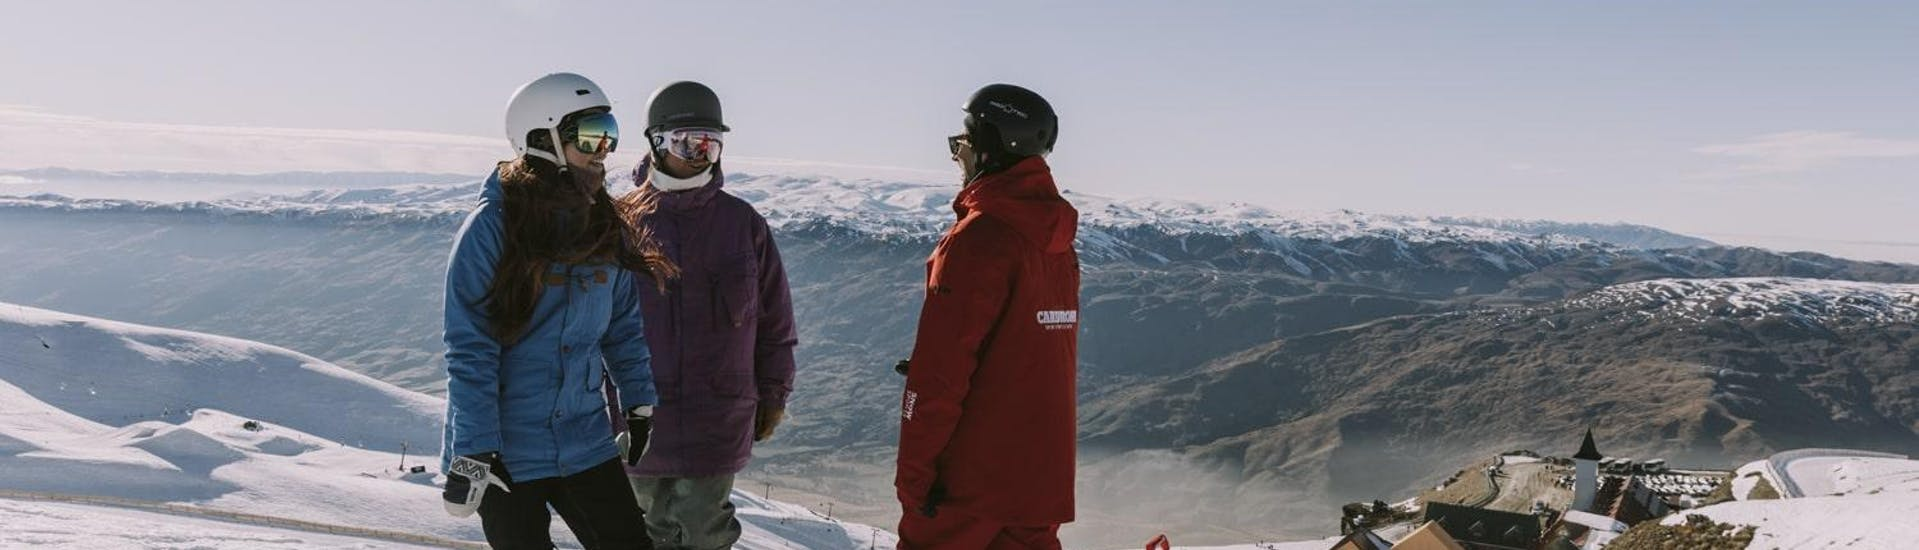 Snowboarding Lessons Adults - First Timer - With Transfer